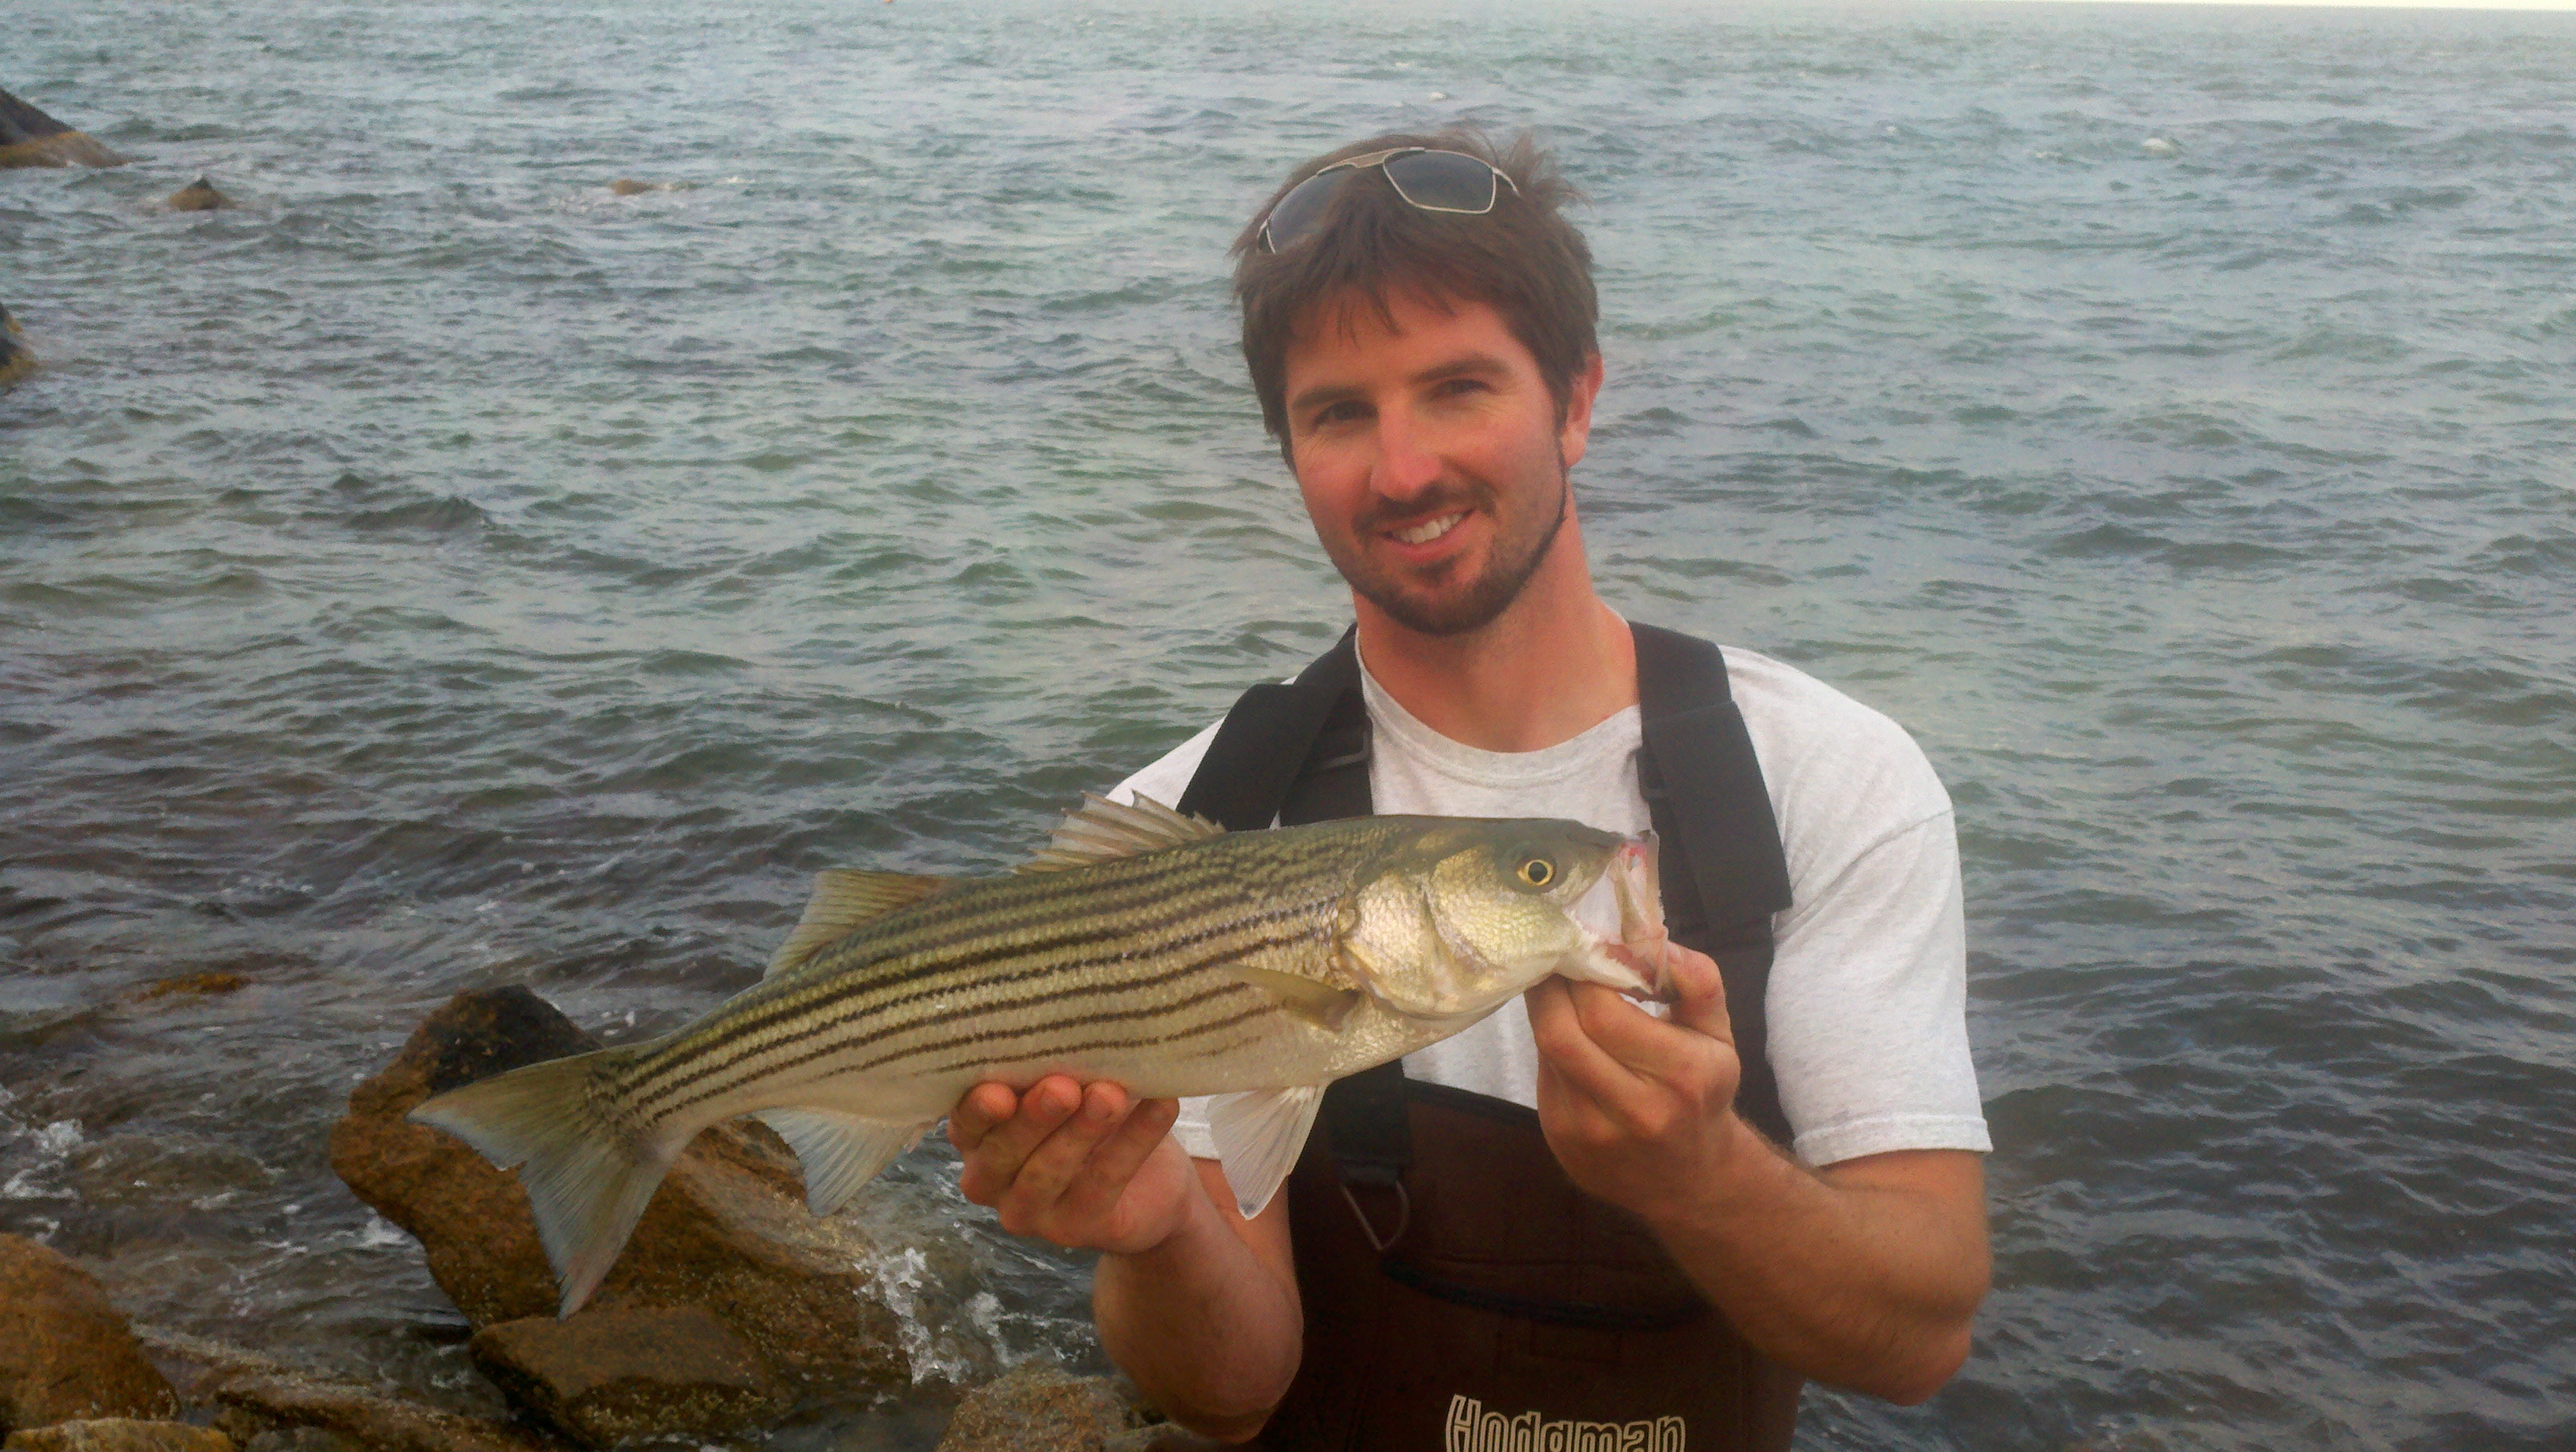 Cape cod surf fishing report for june 12 for Cape cod fishing report